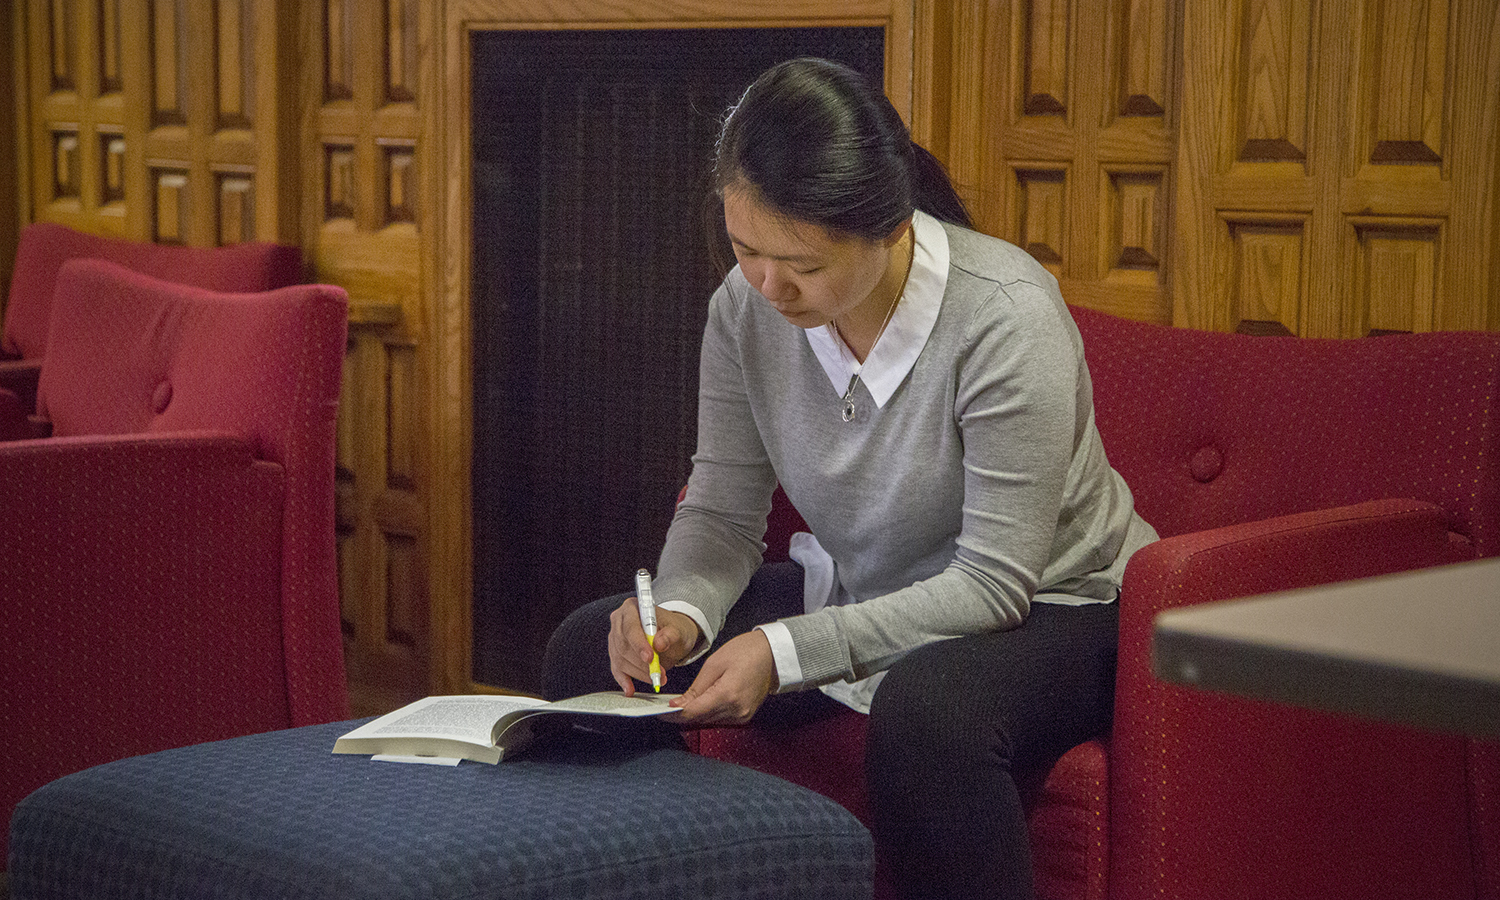 Charmaine Bing Bing Chung studies in the Blackwell room before class.